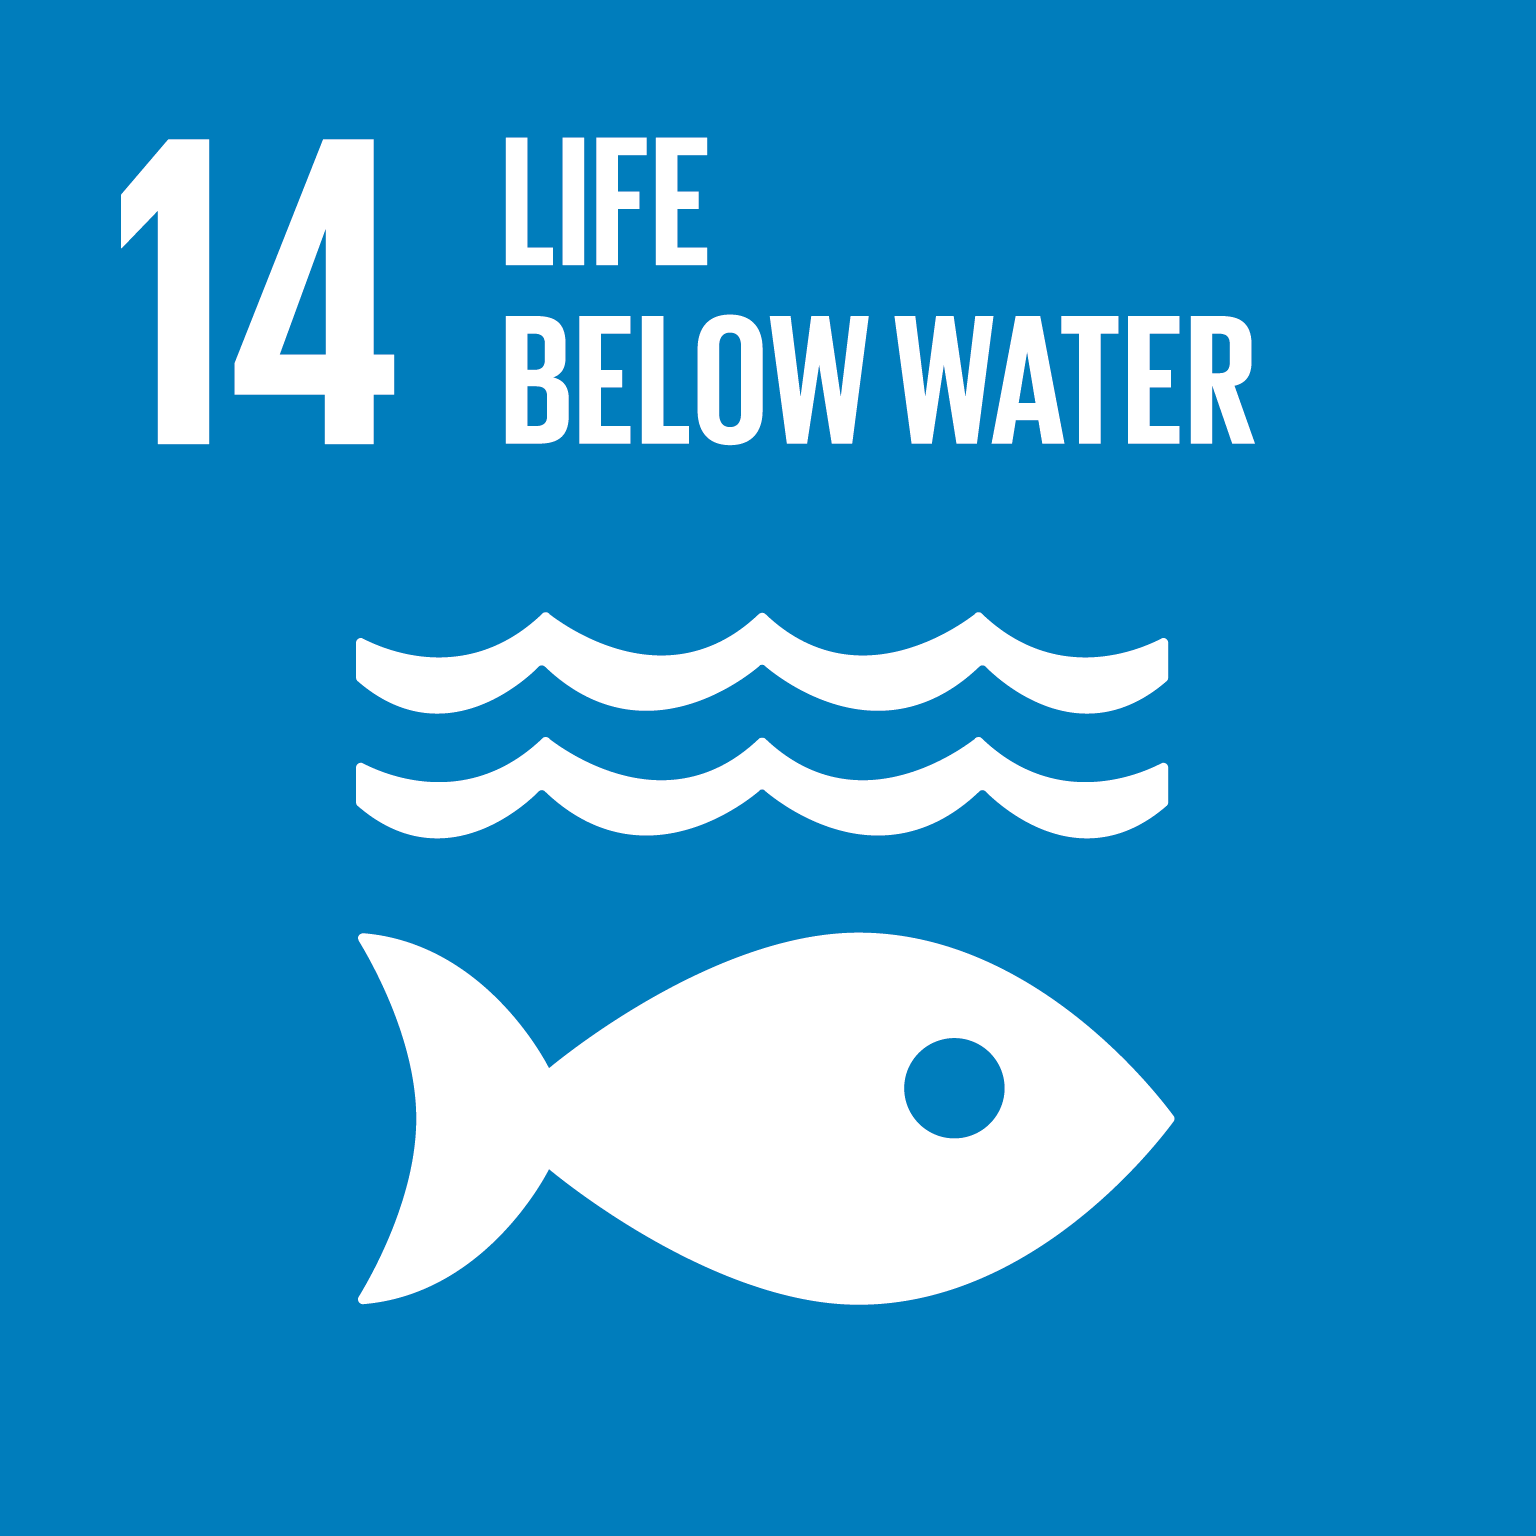 Life Below Water - Conserve and sustainably use the oceans, seas and marine resources